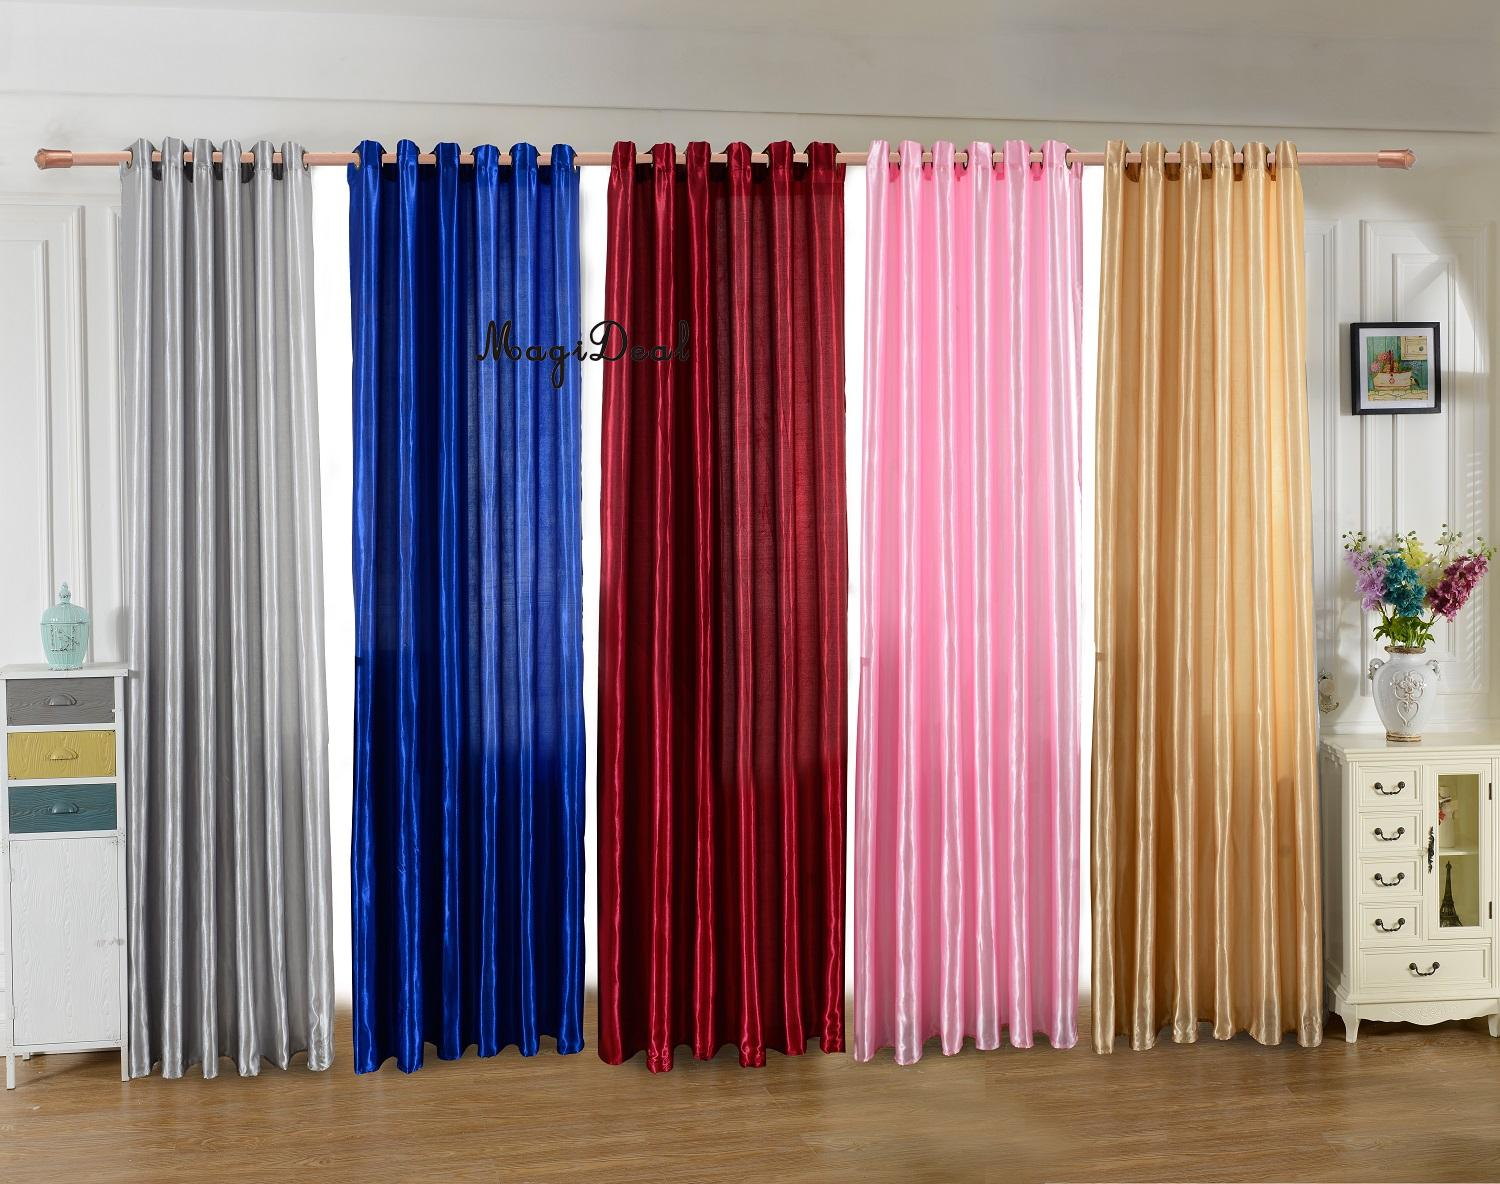 compare prices on modern blackout curtains online shoppingbuy  - magideal modern solid blackout curtains for living room bedroom jacquardwindow room panel shade curtain drape